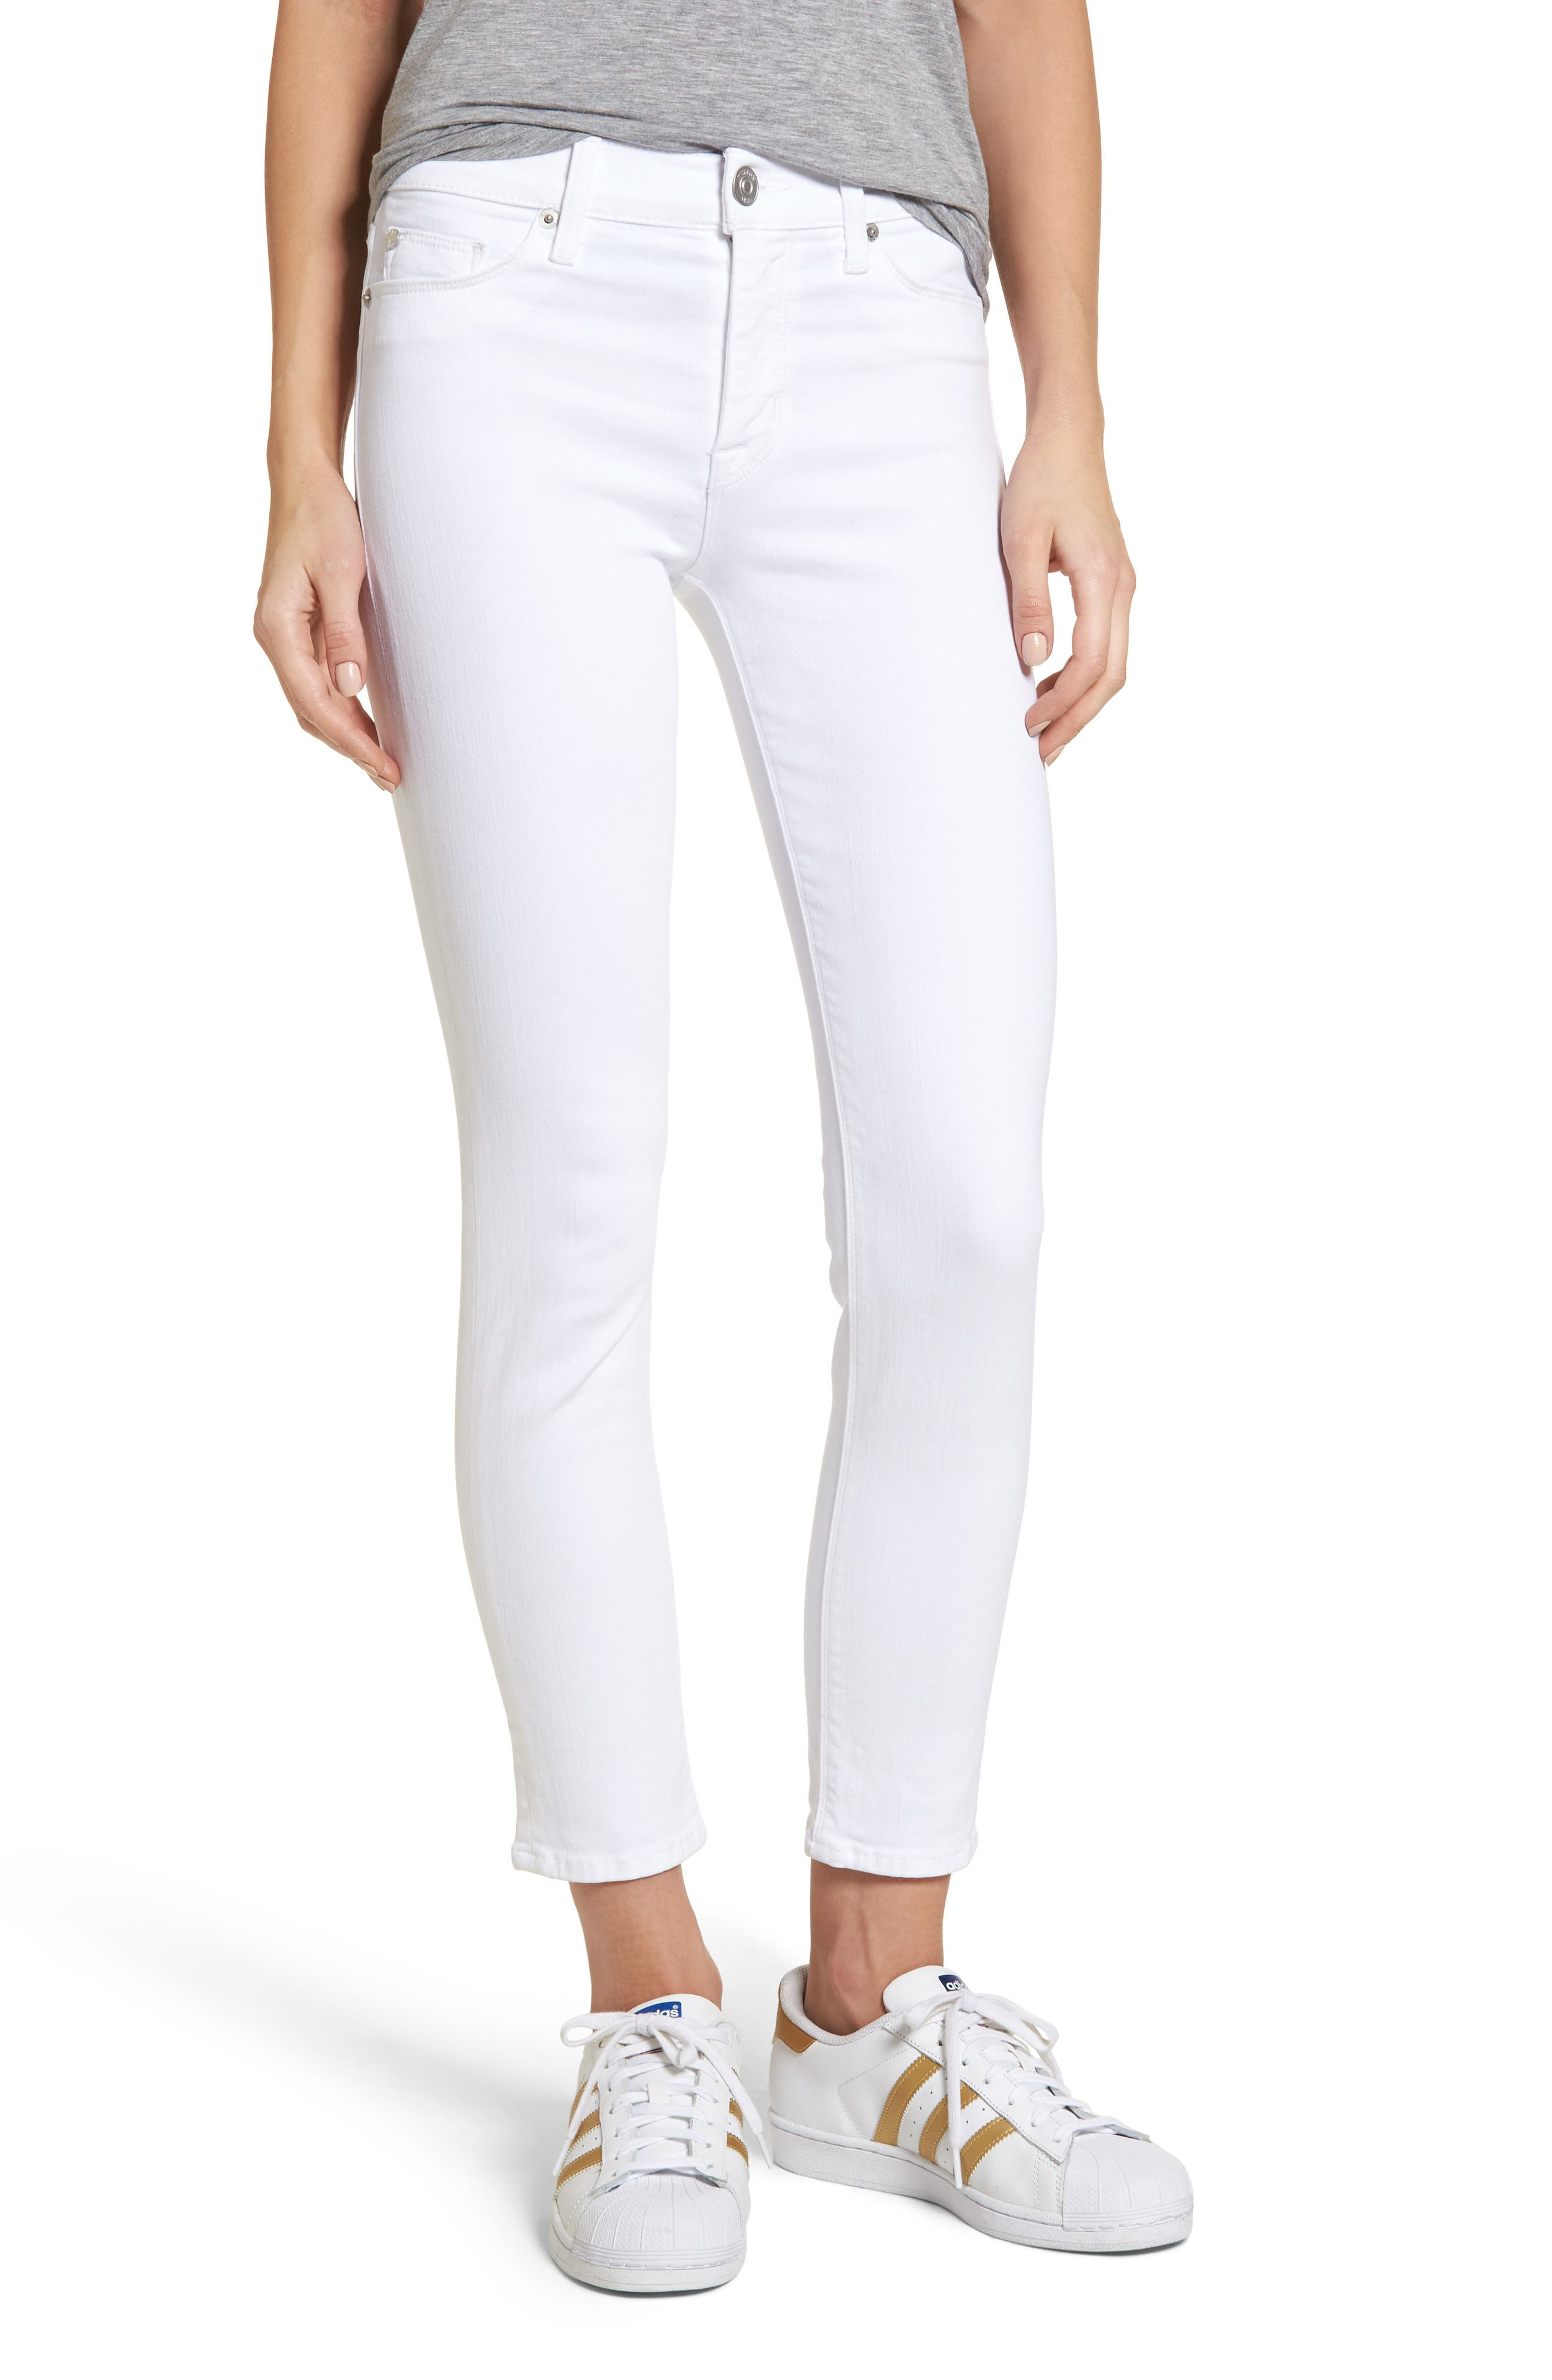 Tally Ankle Skinny Jeans,                         Main,                         color, 110